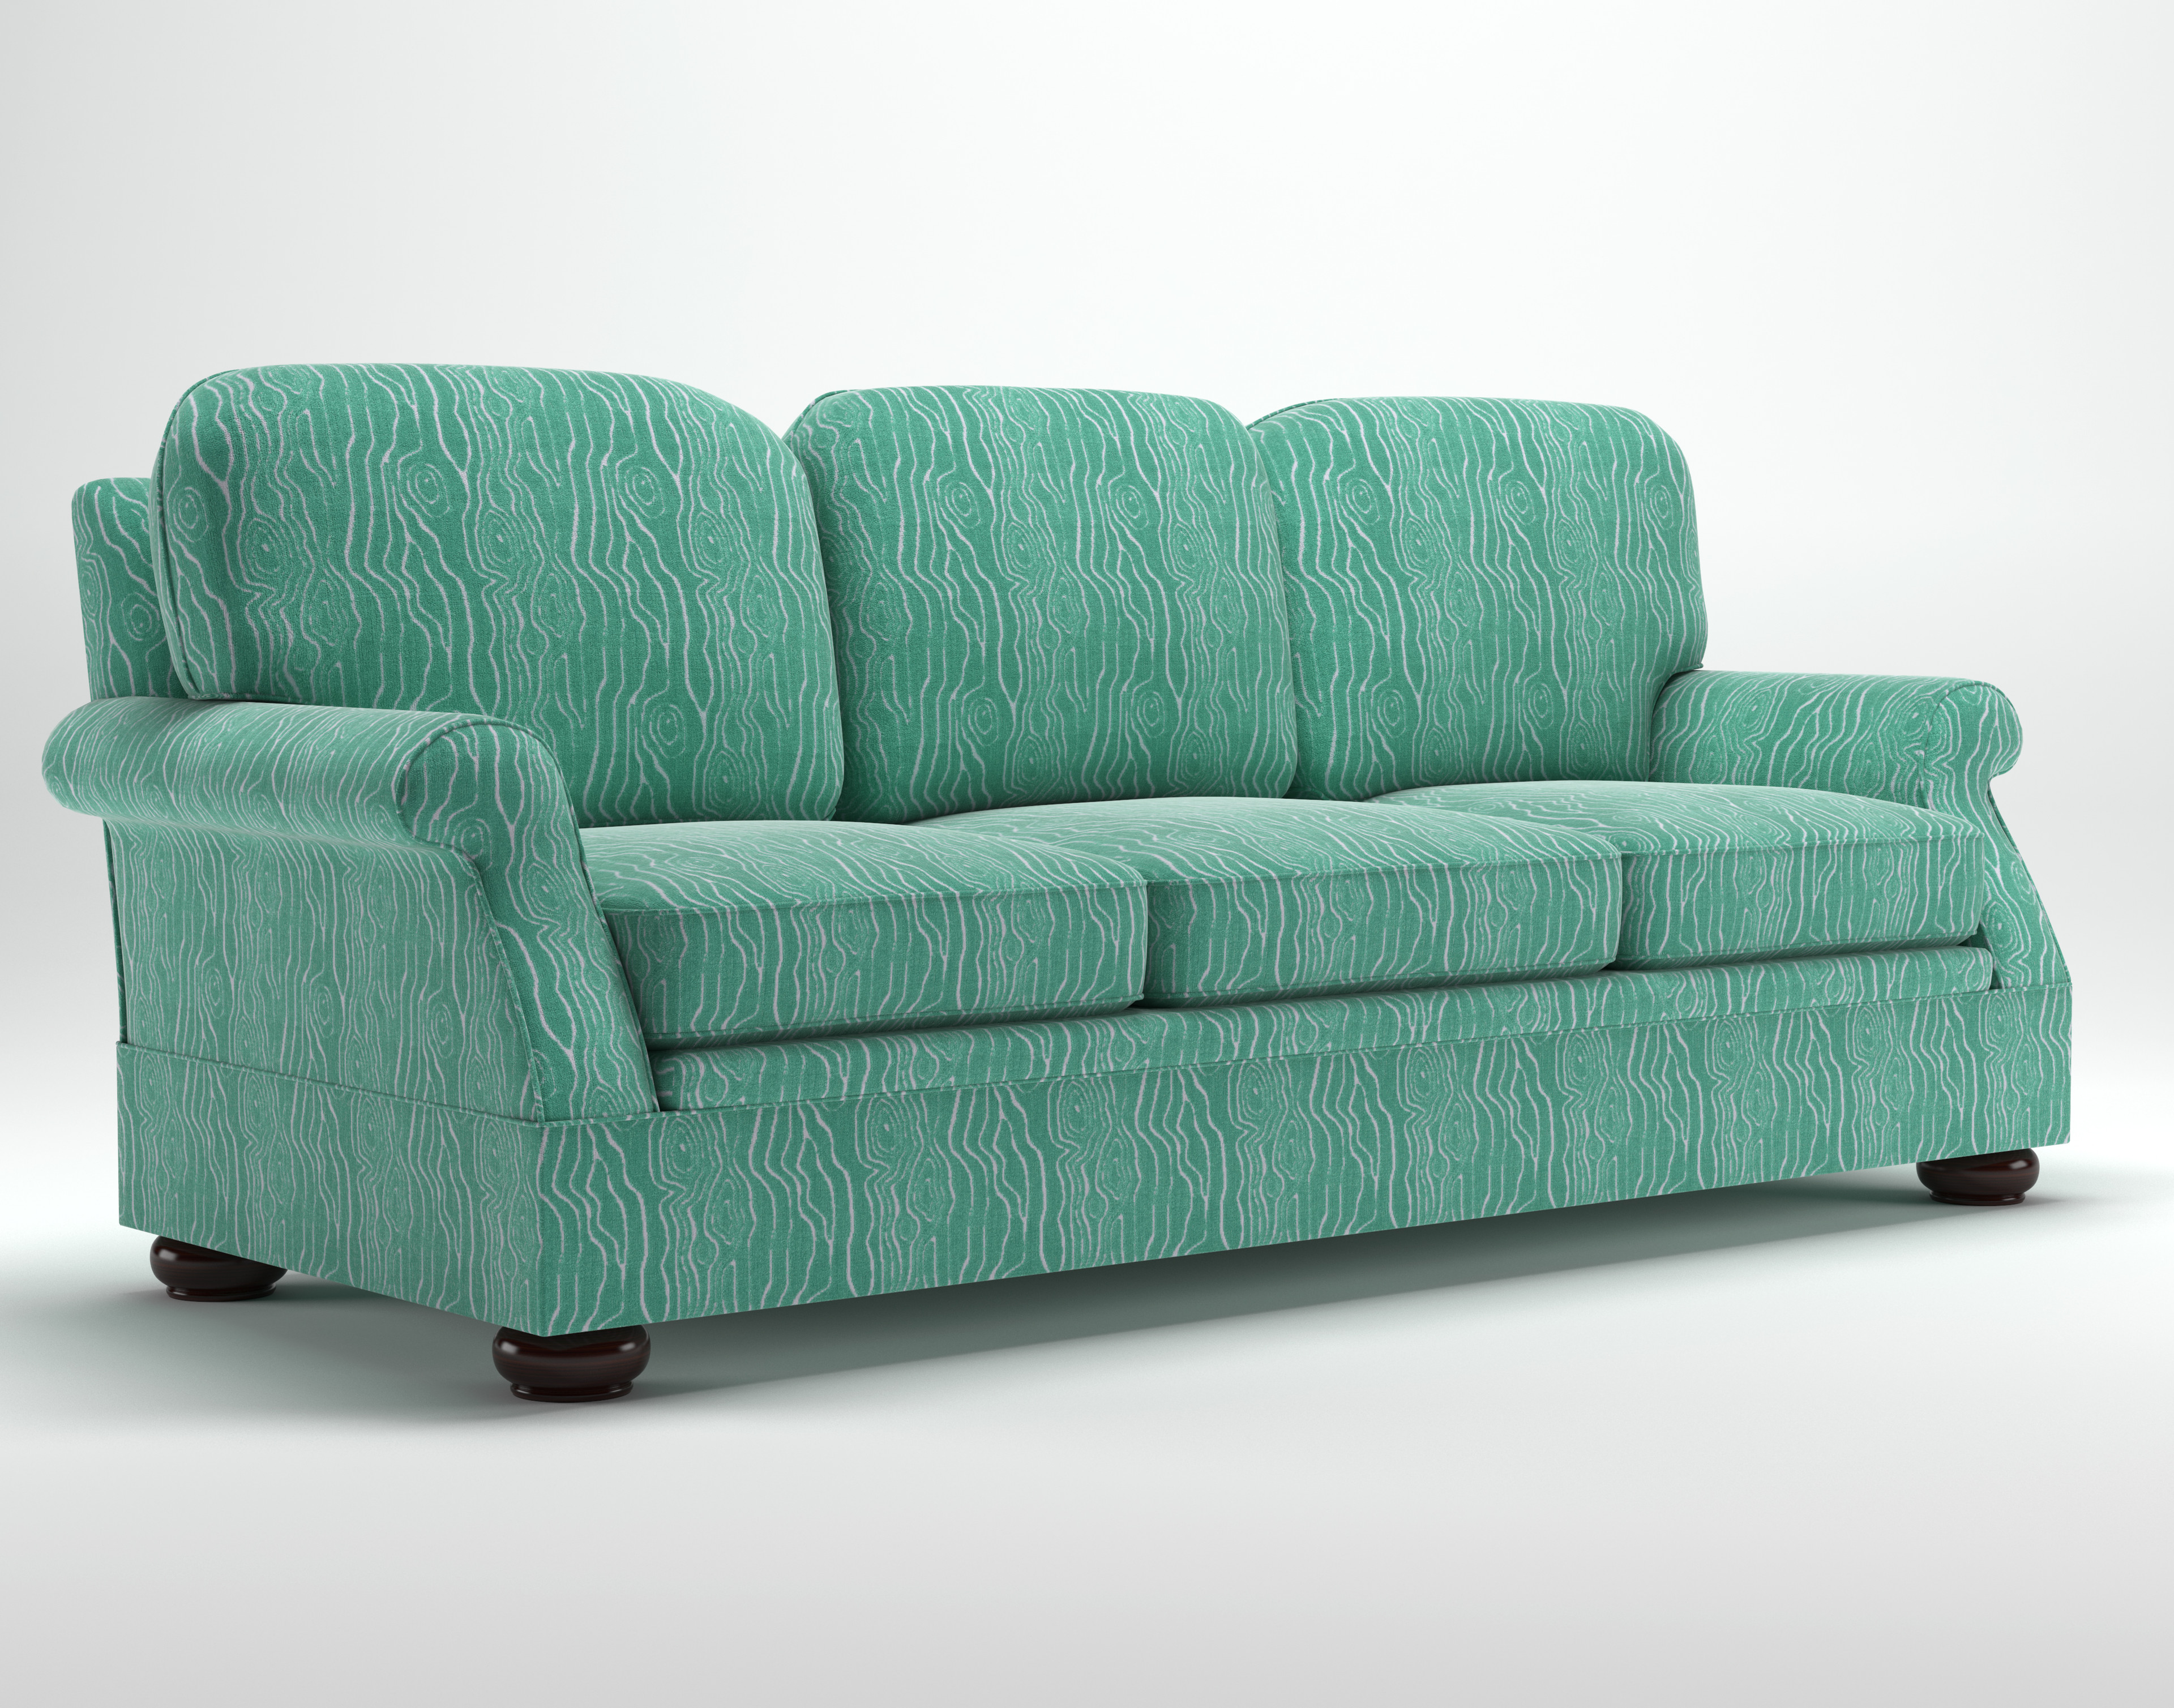 Sofa Style 4: Different style feet.